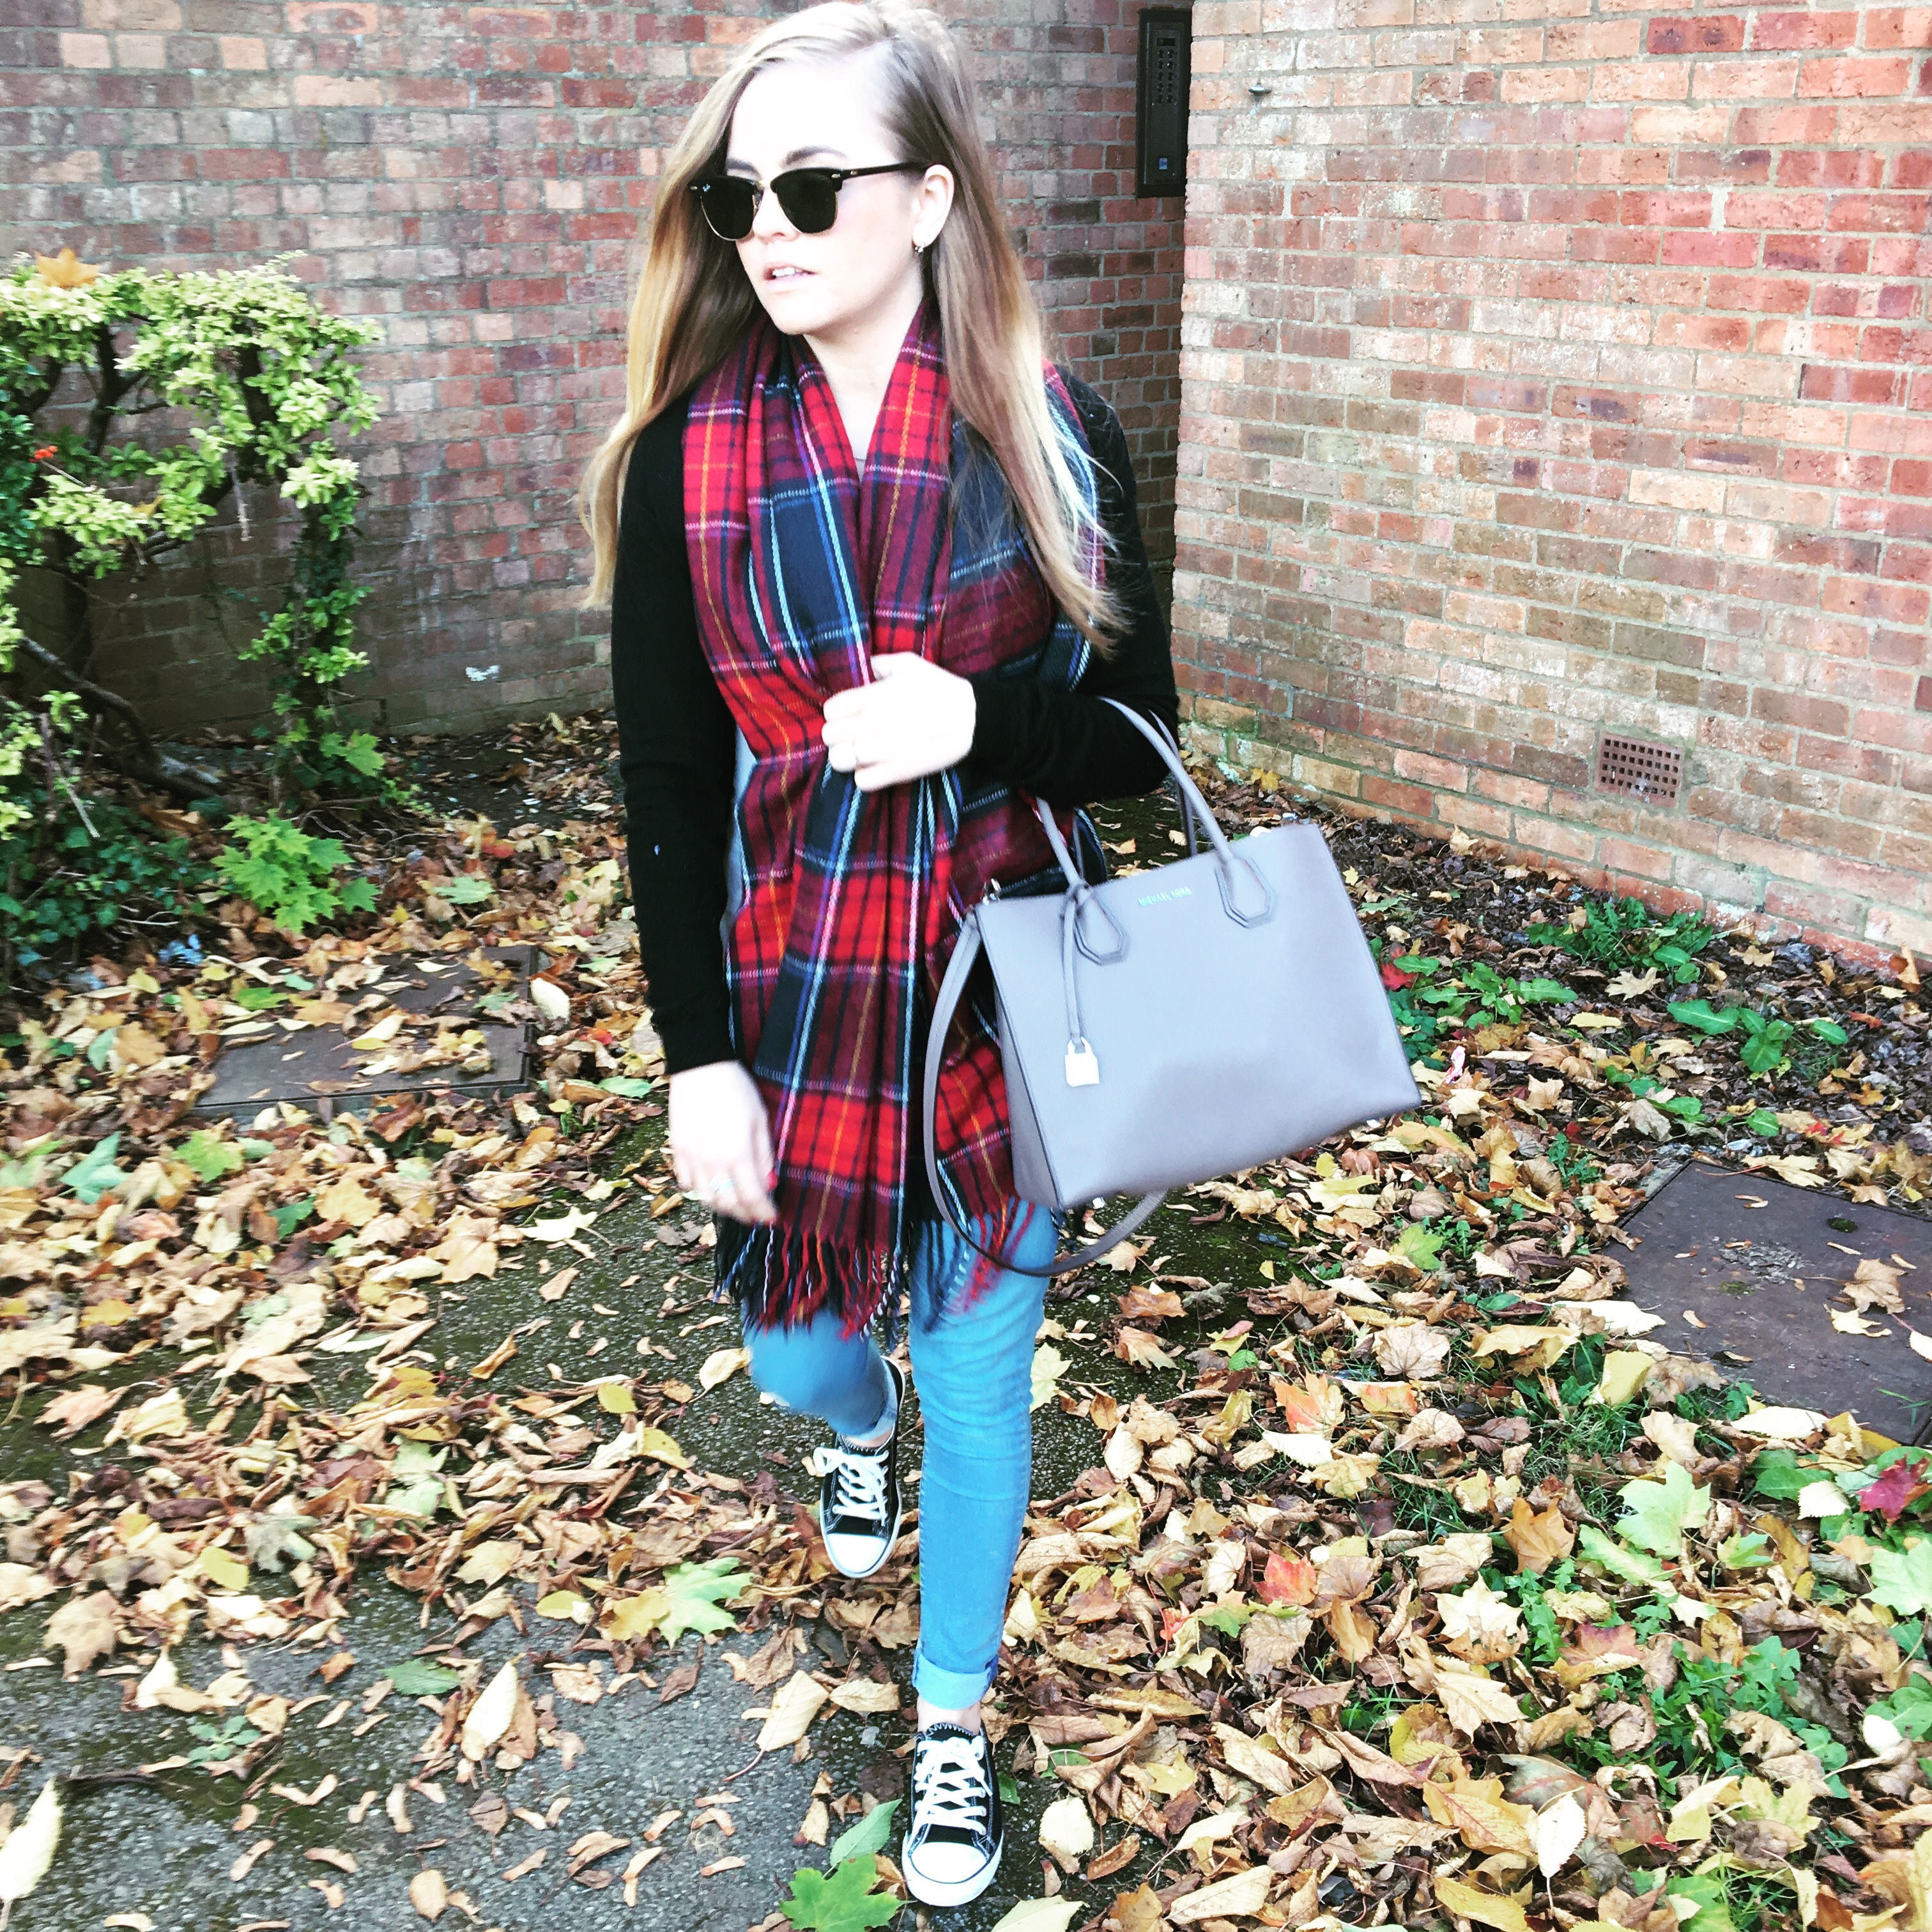 The Fashion Blogger from a Council Estate